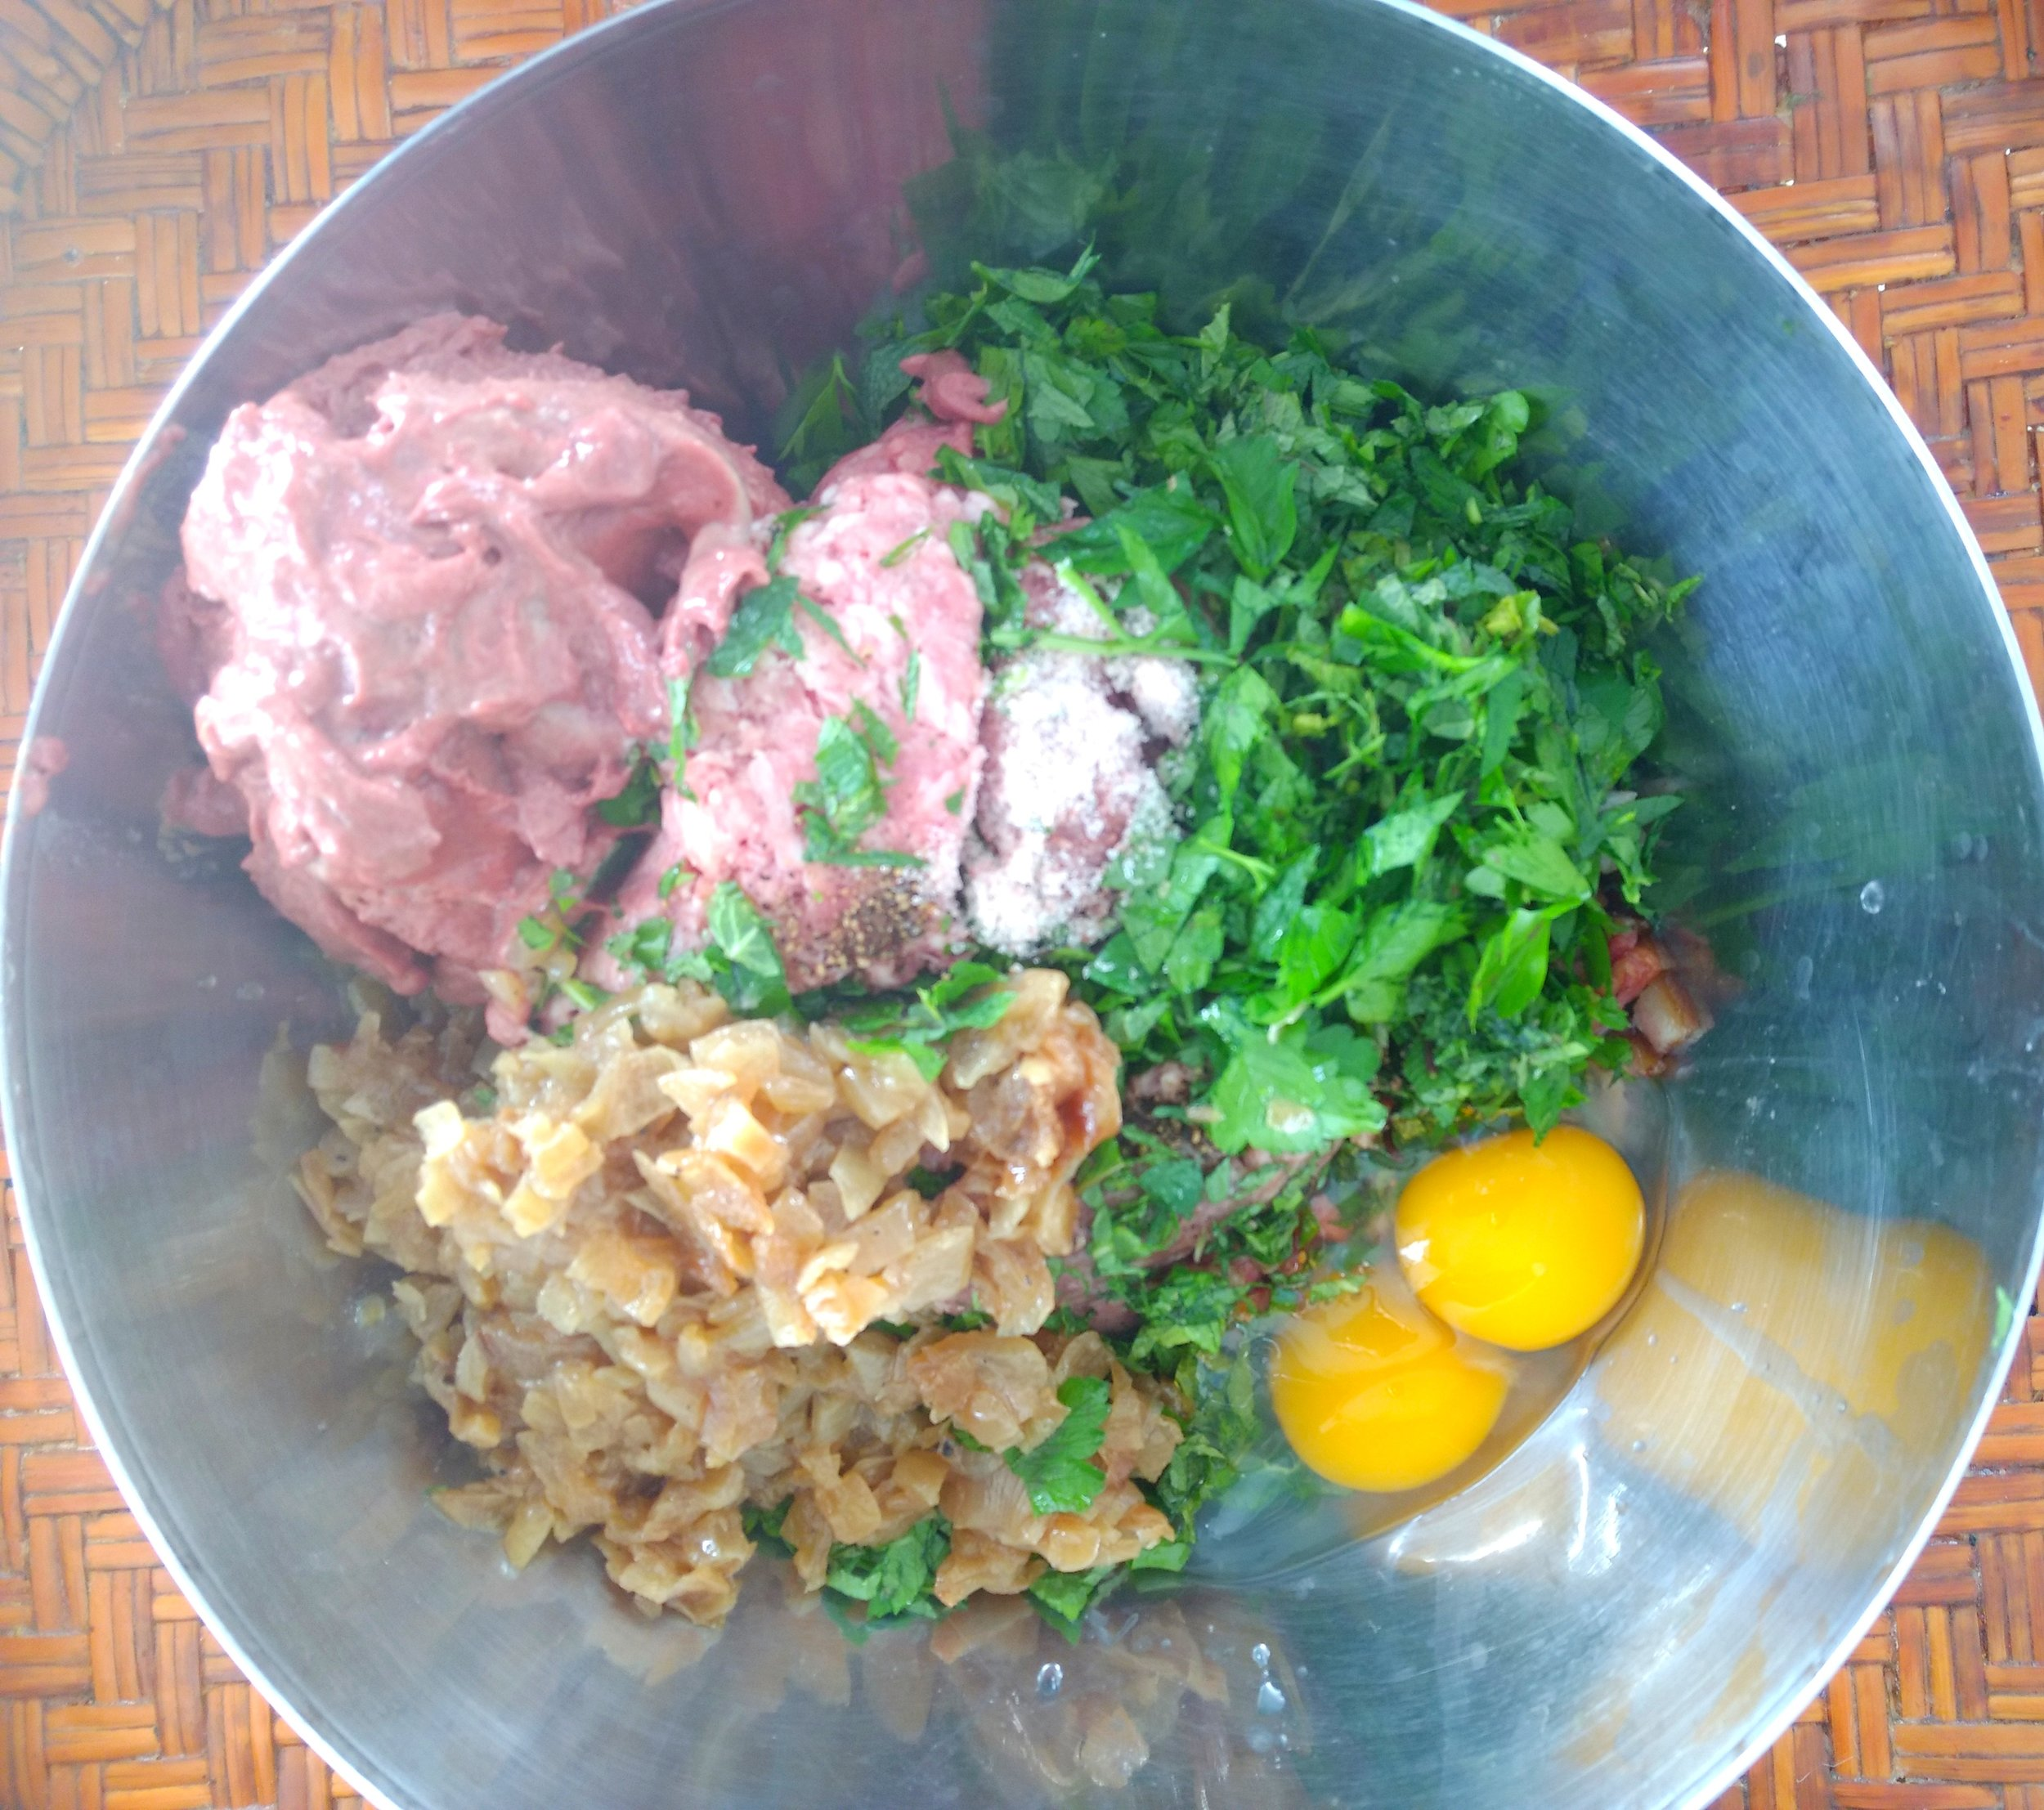 2- In a large bowl, add the lamb,liver, bacon, caramelized onions, parsley, mint, egg and the remaining ½ teaspoon salt. Mix well with hands until combined.